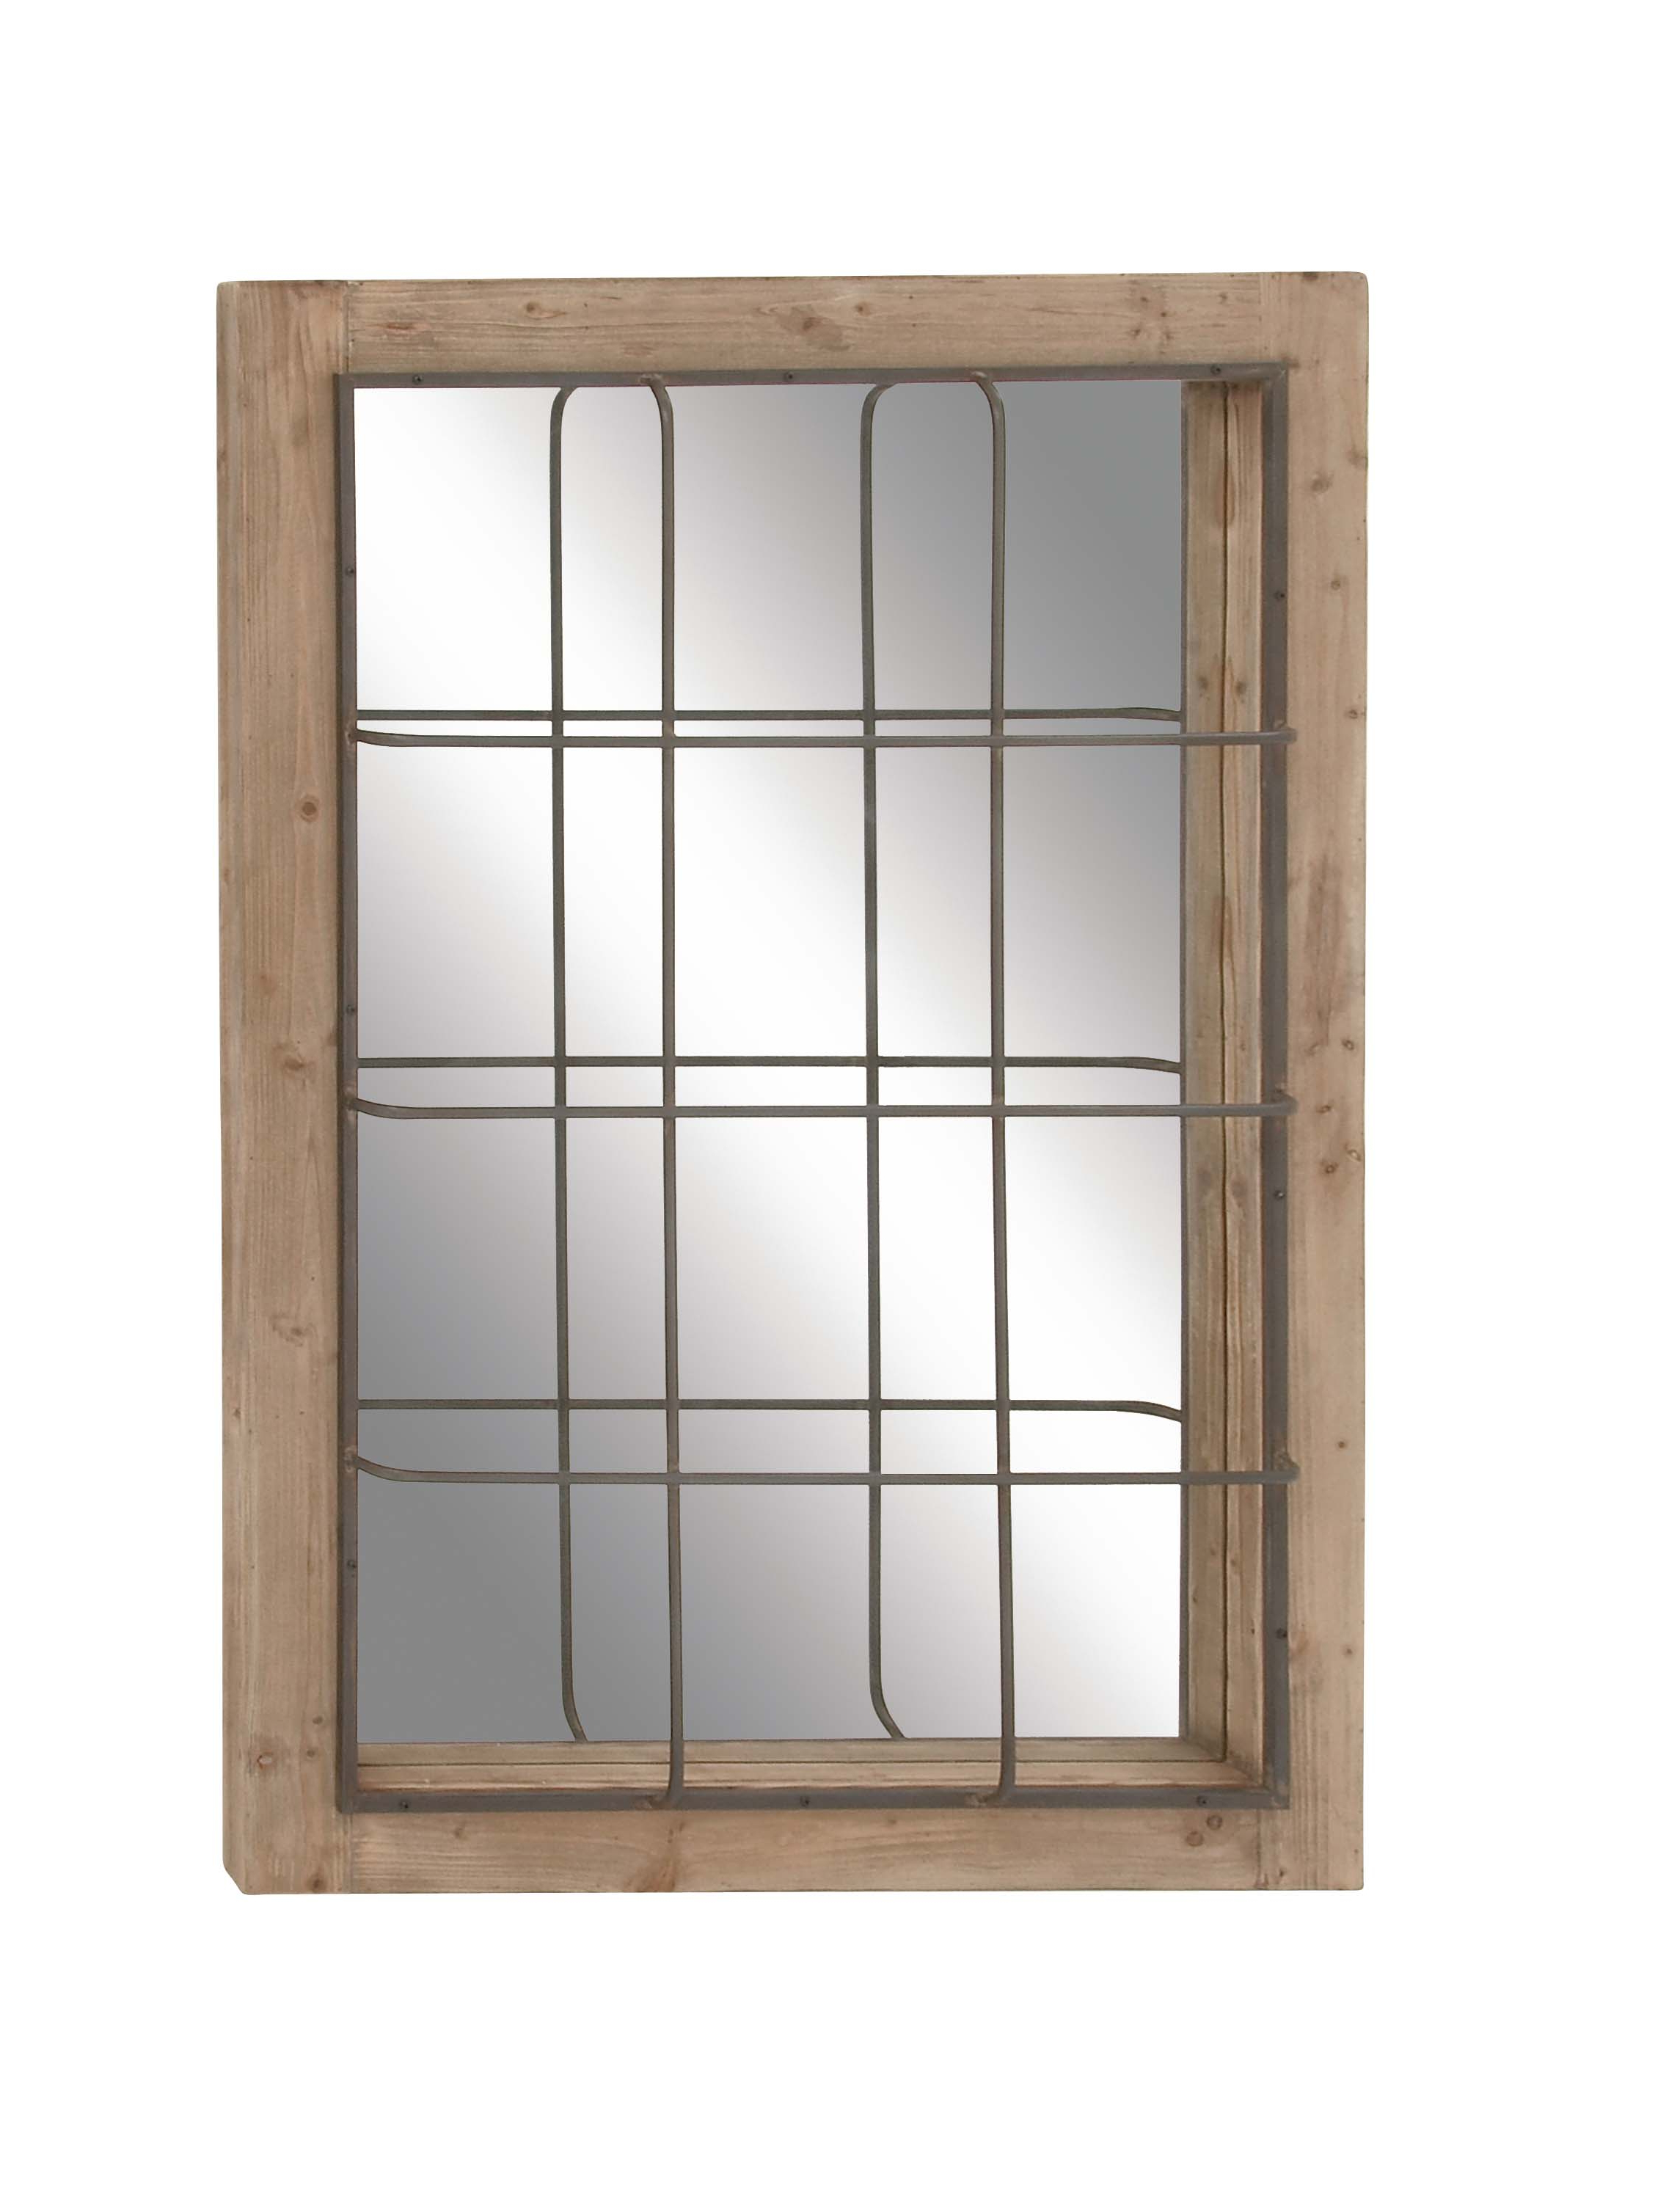 Wood Framed Wall Mirrors Regarding Well Liked Decmode Farmhouse 52 X 36 Inch Rectangular Wooden Framed Wall Mirror With Metal Grid Overlay, Brown (View 3 of 20)